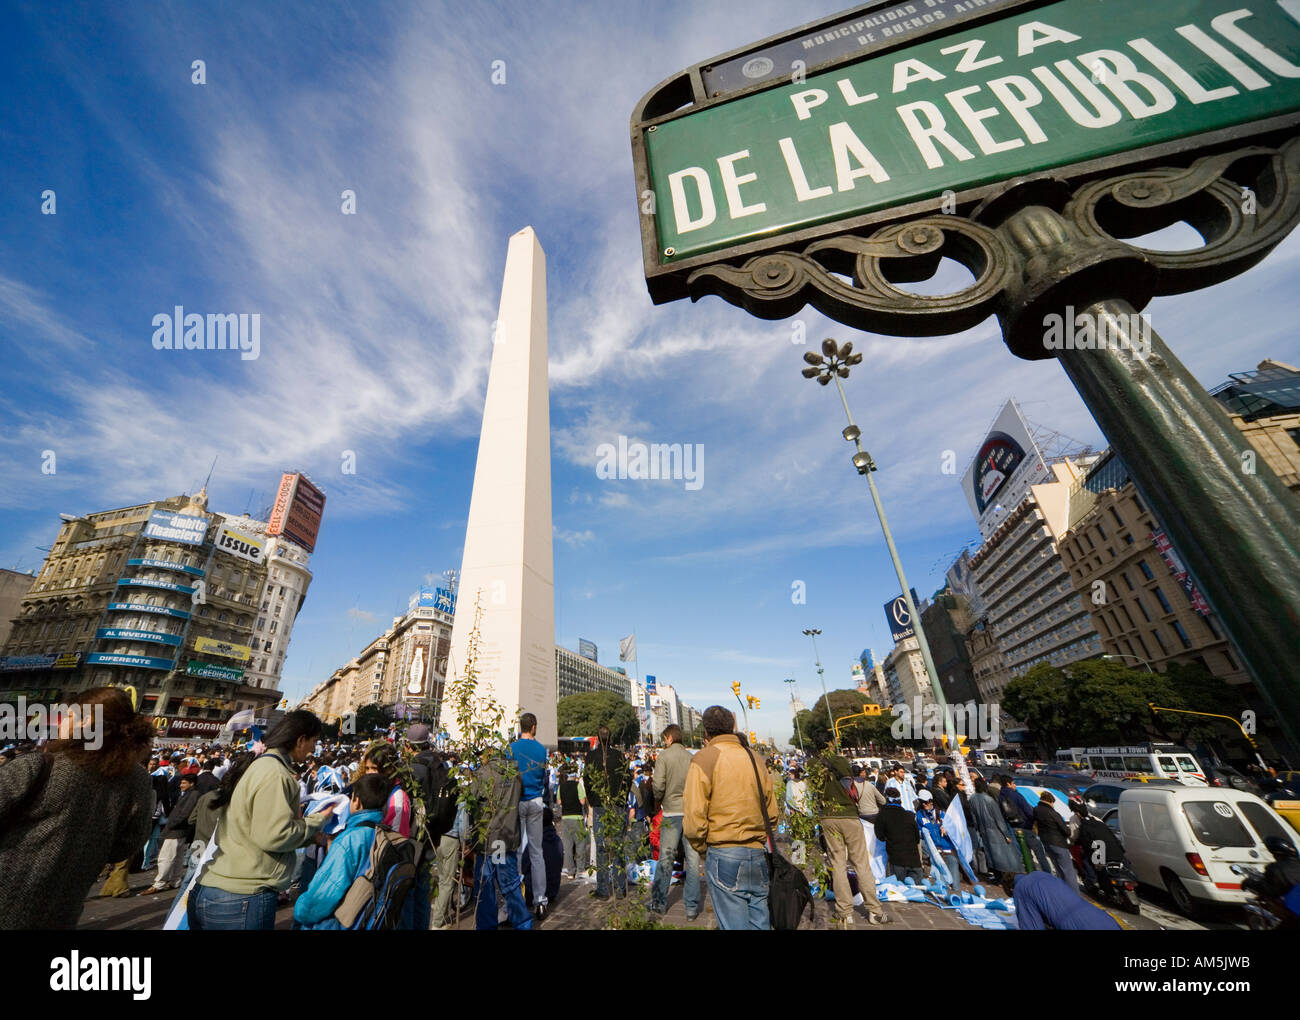 Football fans gather at the Plaza de la Republica in Buenos Aires to celebrate a victory of the national team. - Stock Image